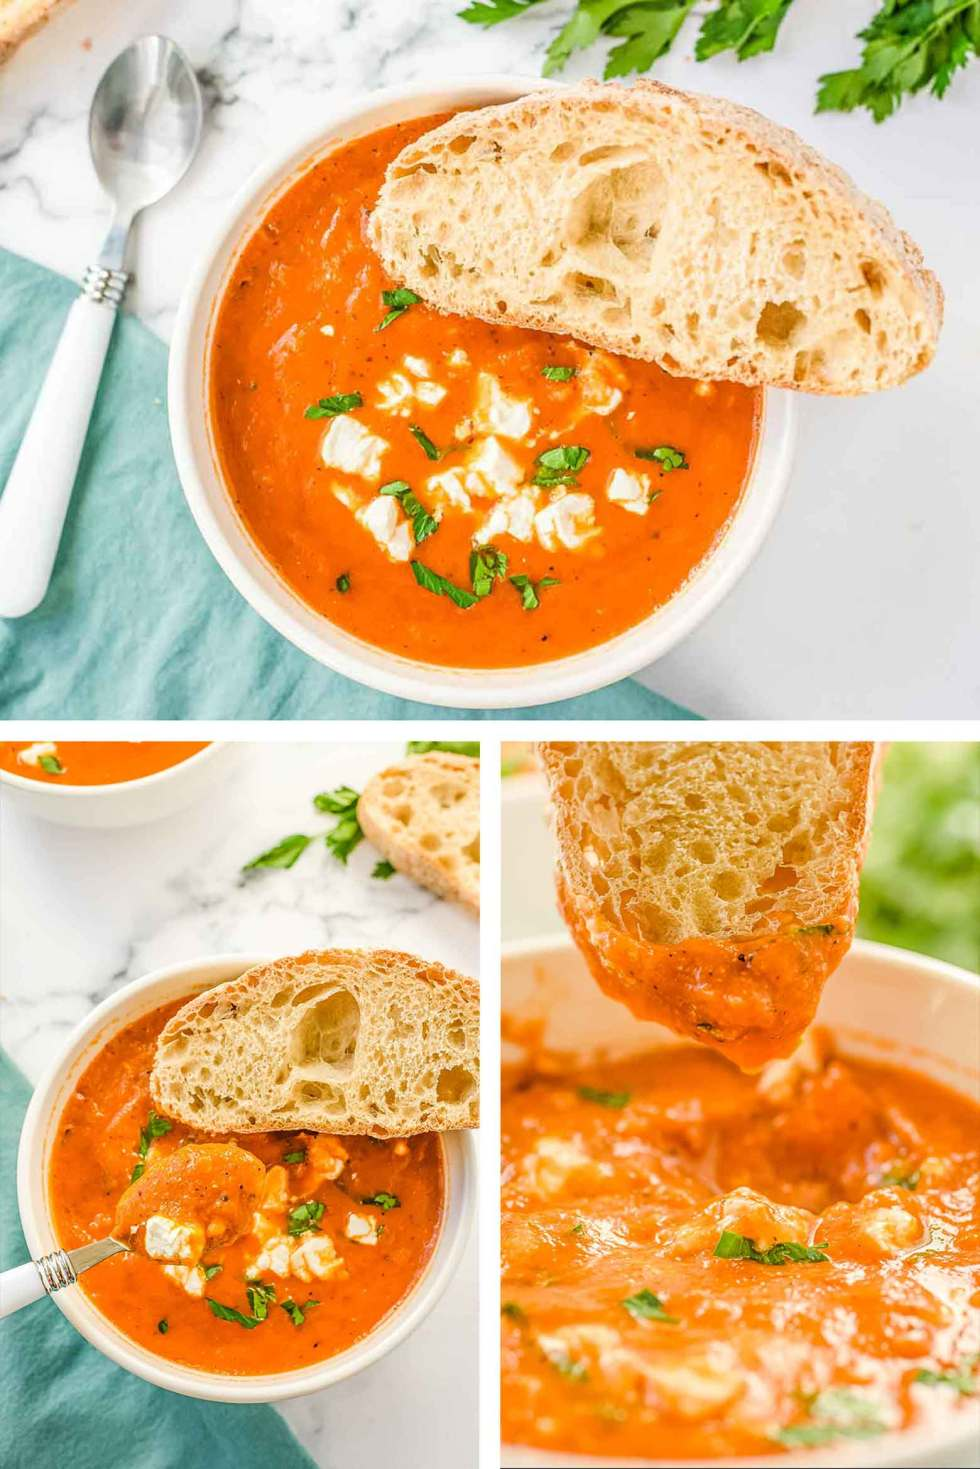 a white bowl filled with tomato and roasted red pepper soup with lentils with a side of crusty french bread slices.